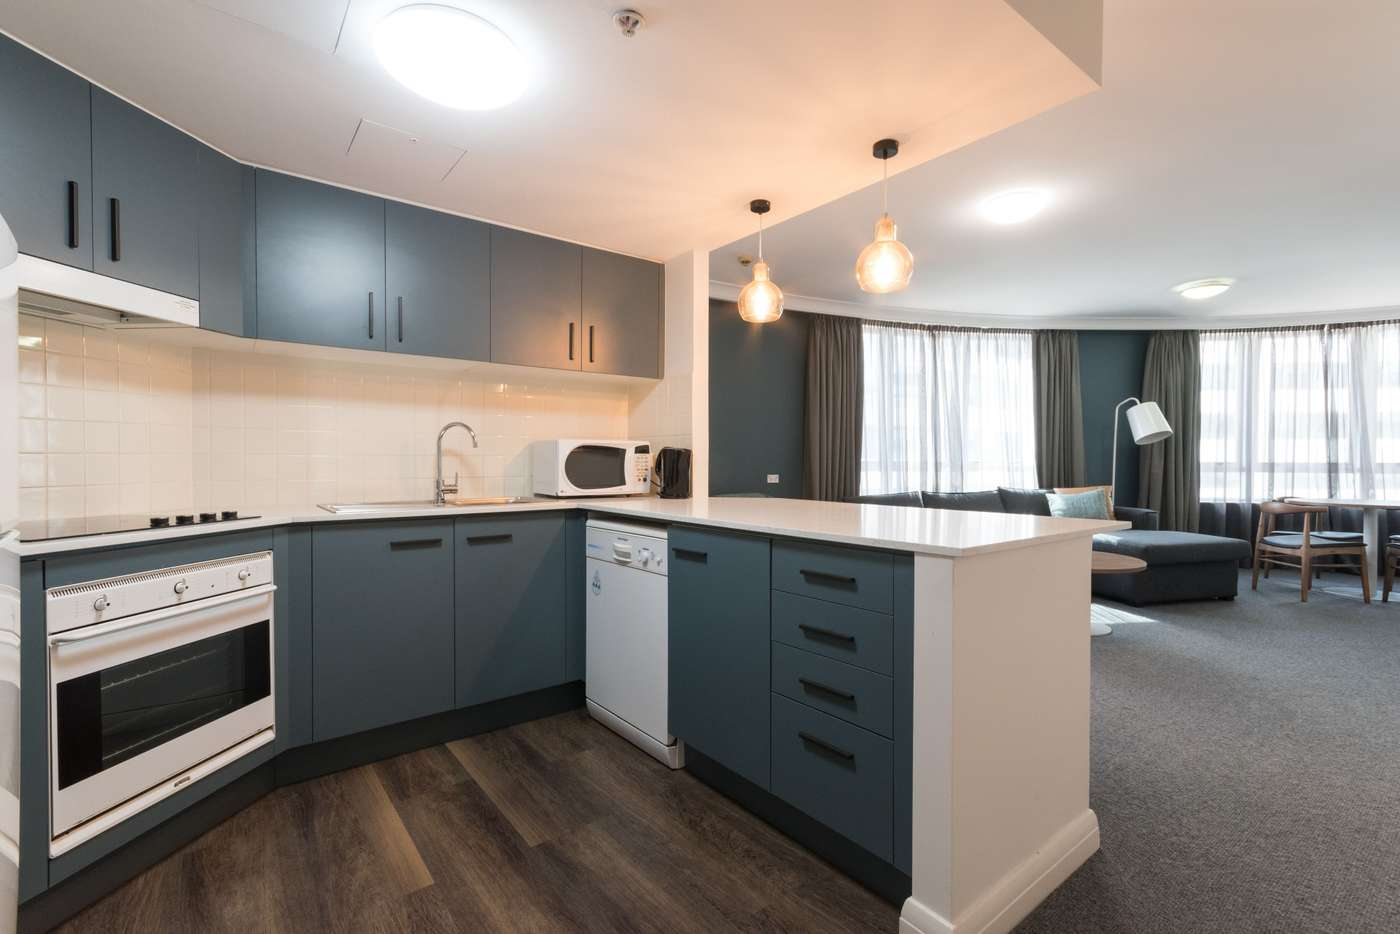 Main view of Homely unit listing, 514/10 Brown Street, Chatswood NSW 2067